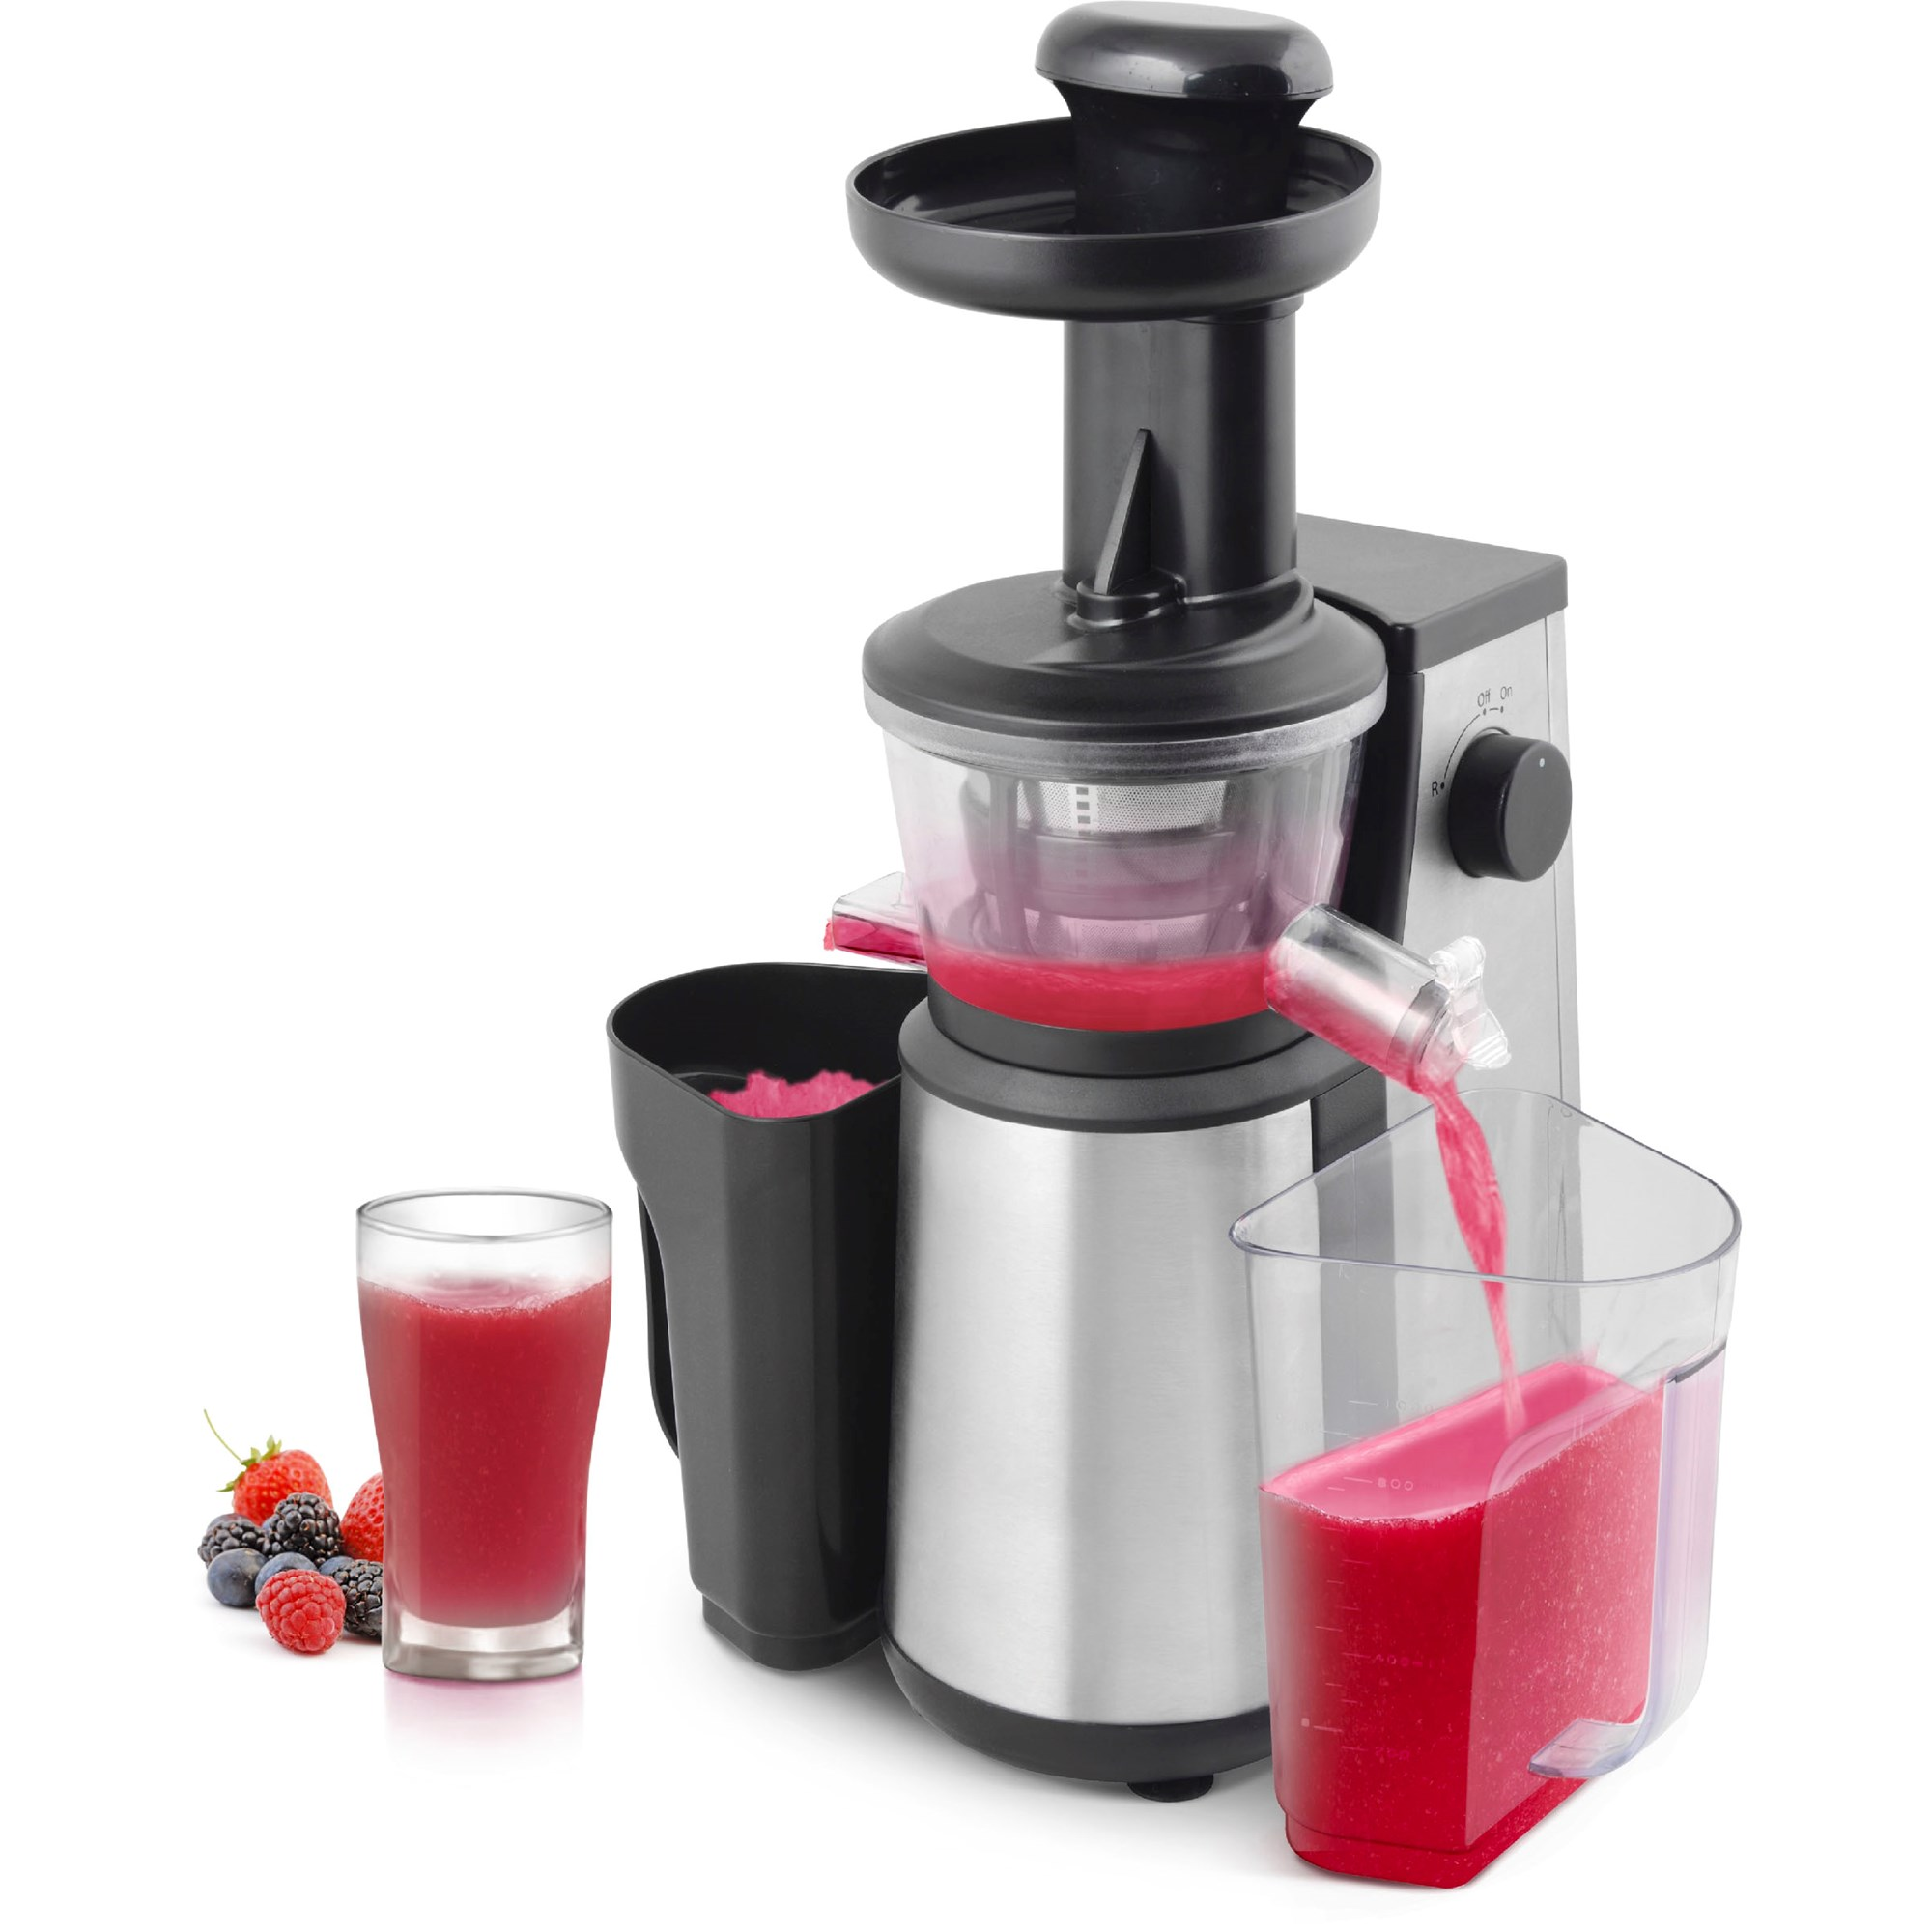 Slow Juicer fra Day To store beholdere